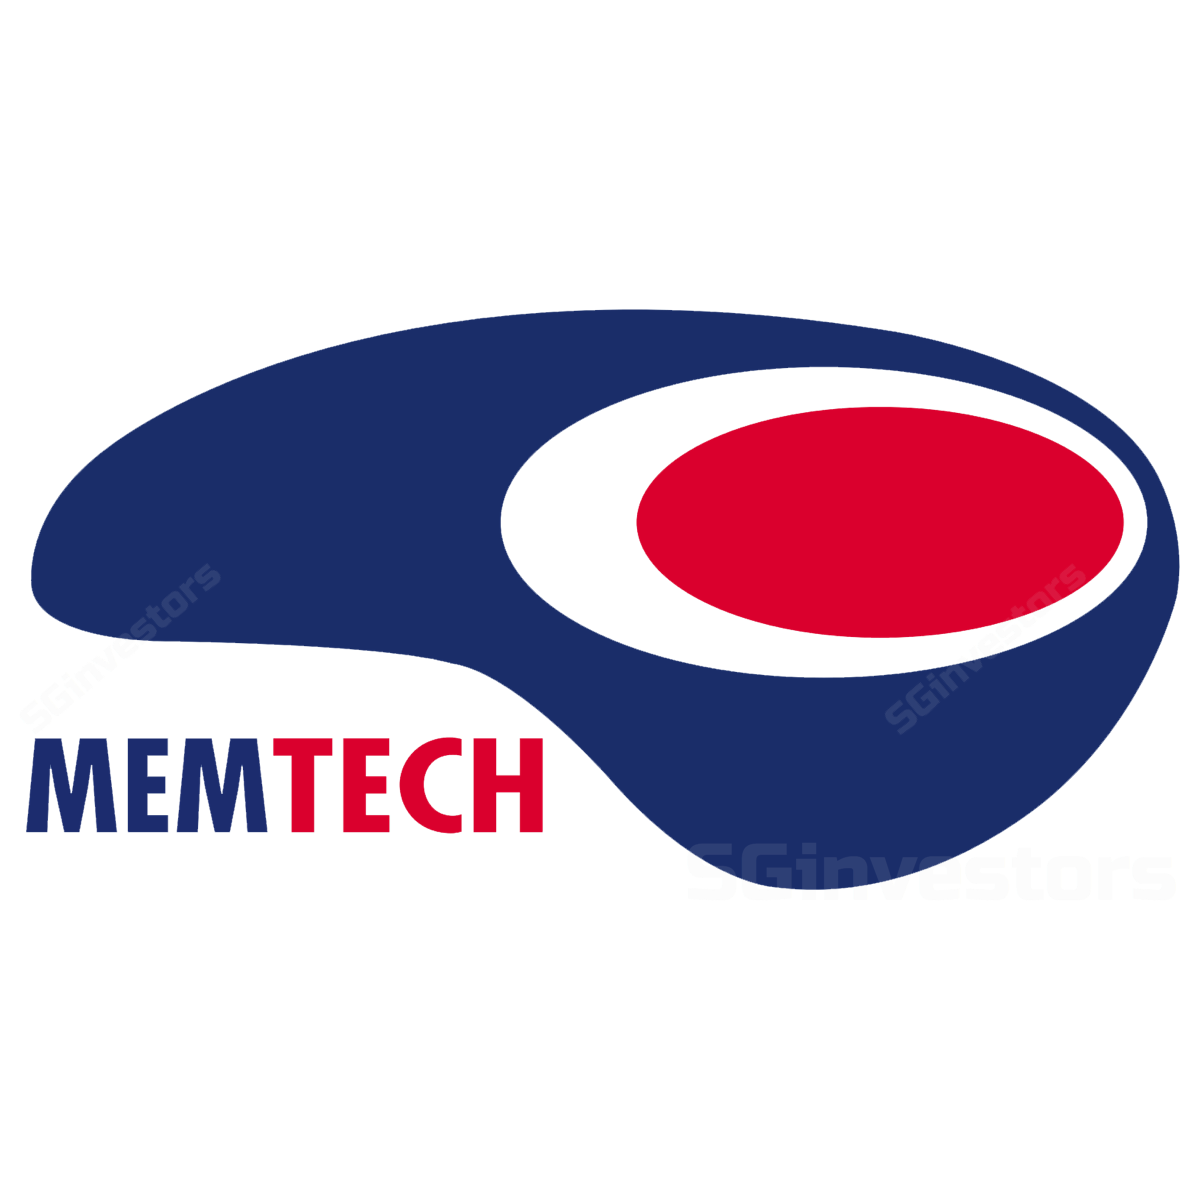 Memtech International - CIMB Research 2017-02-24: Poised for more customer wins